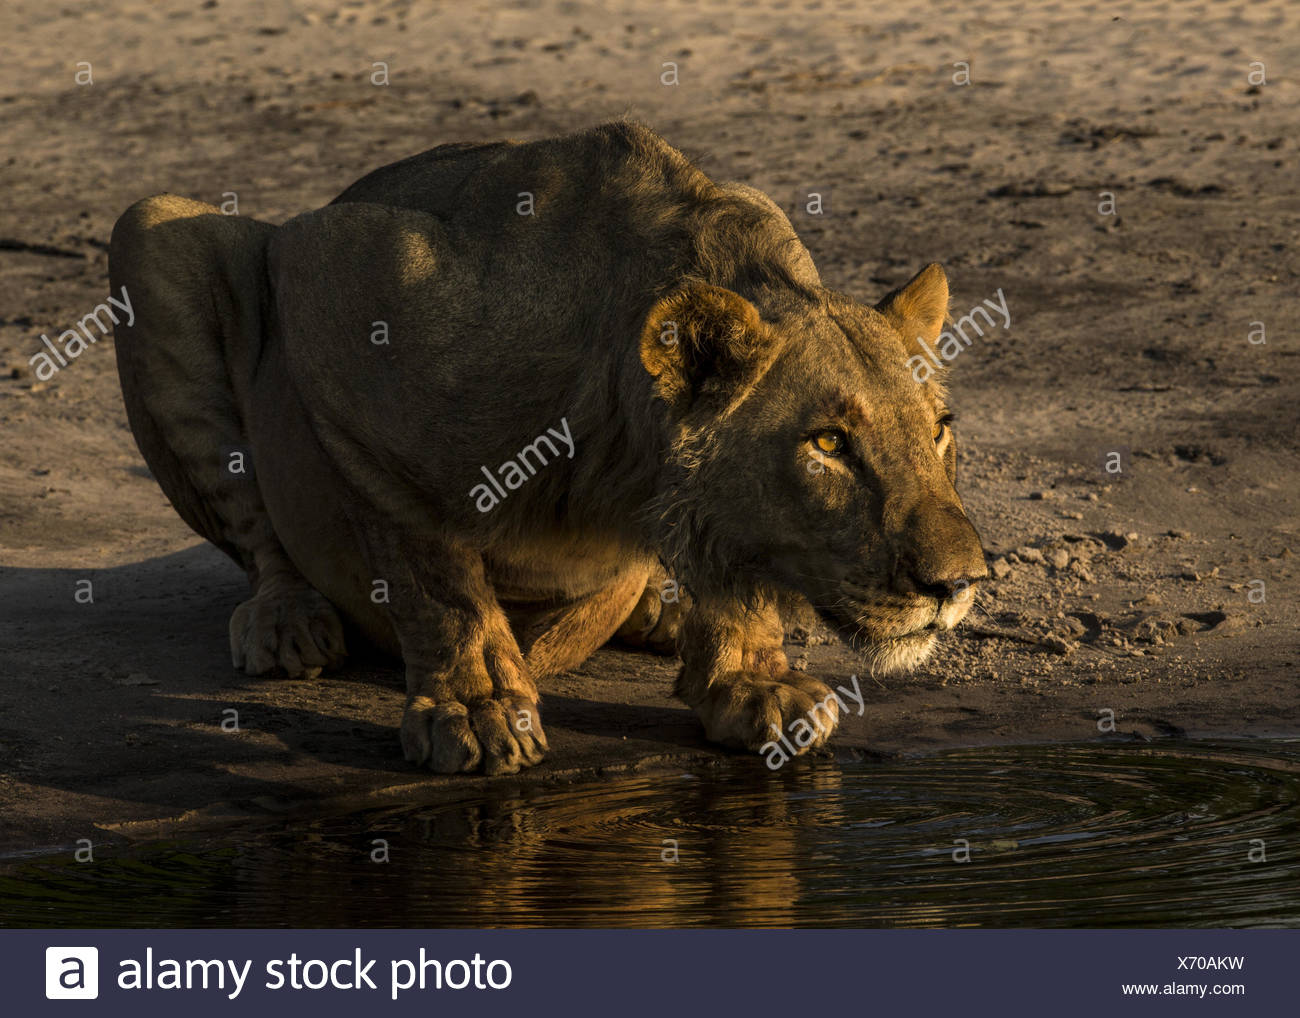 A young male lion, Panthera leo, surveys his surroundings before drinking from a spillway. - Stock Image